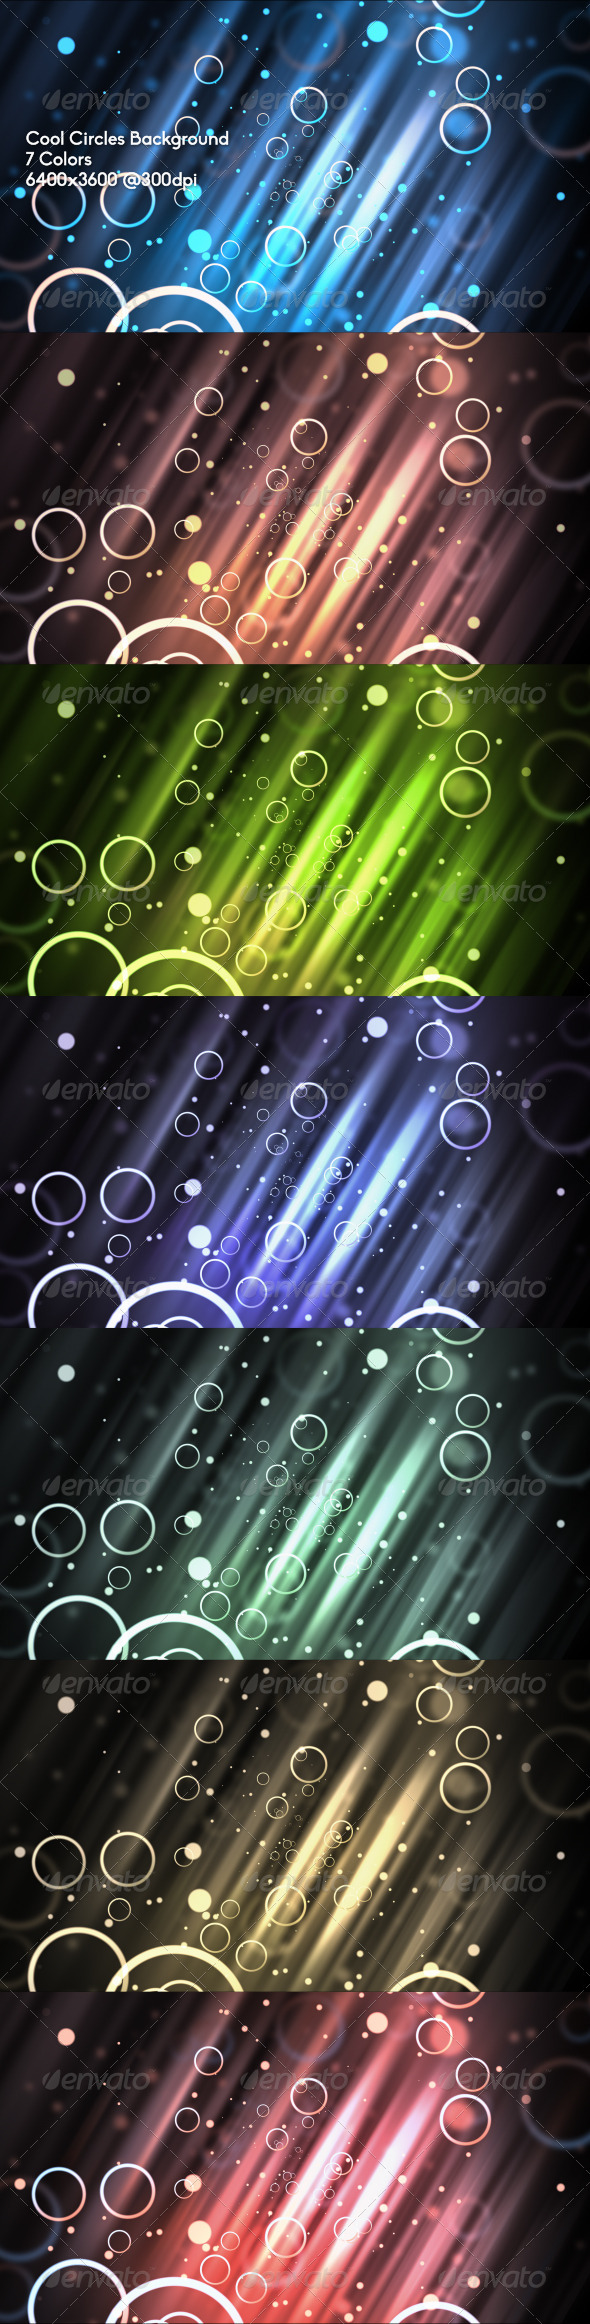 GraphicRiver Cool Circles Background 6617483